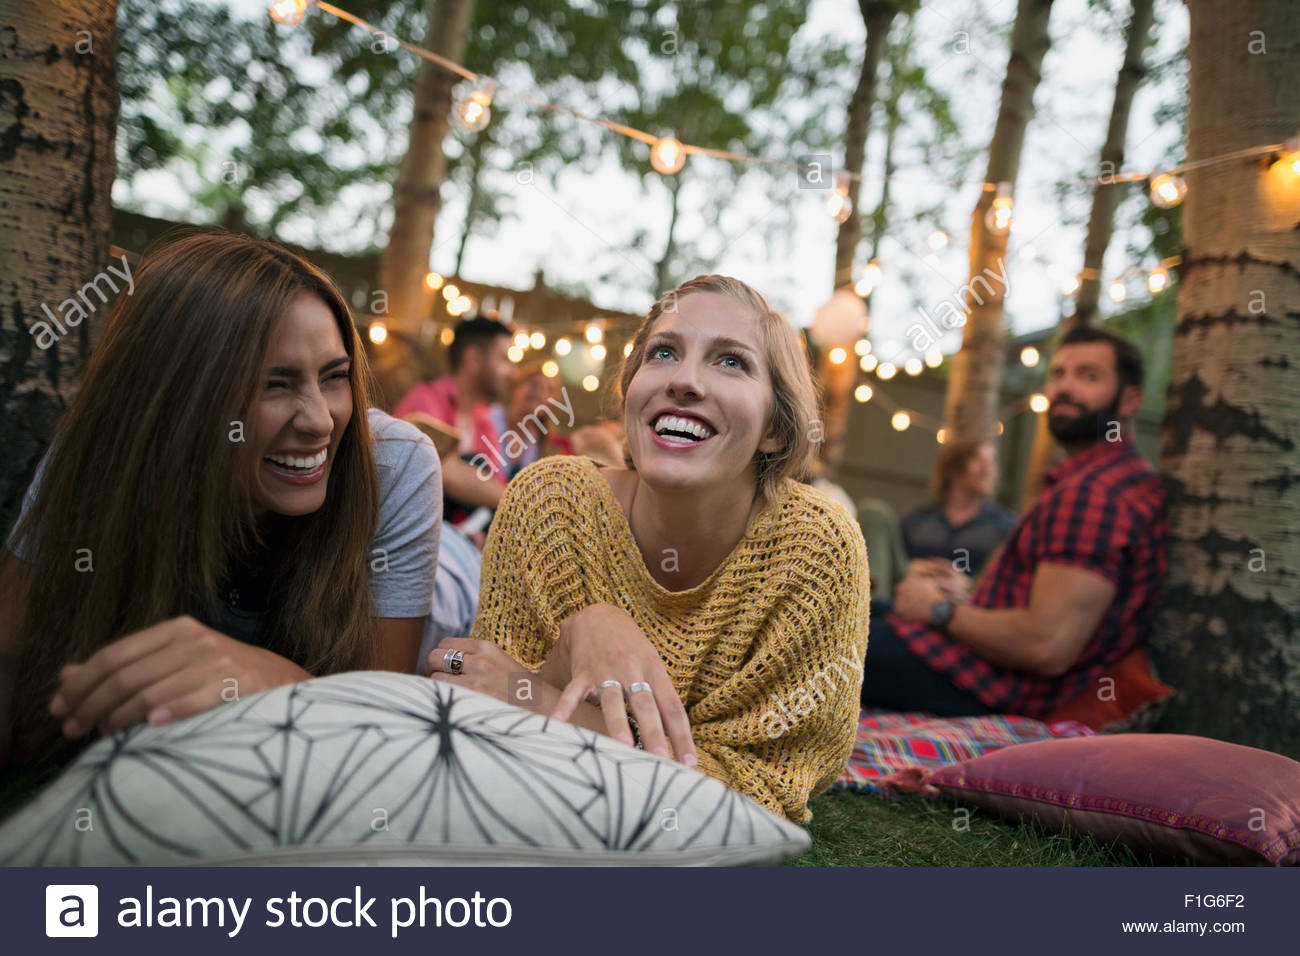 Smiling women relaxing on cushion at backyard party - Stock Image